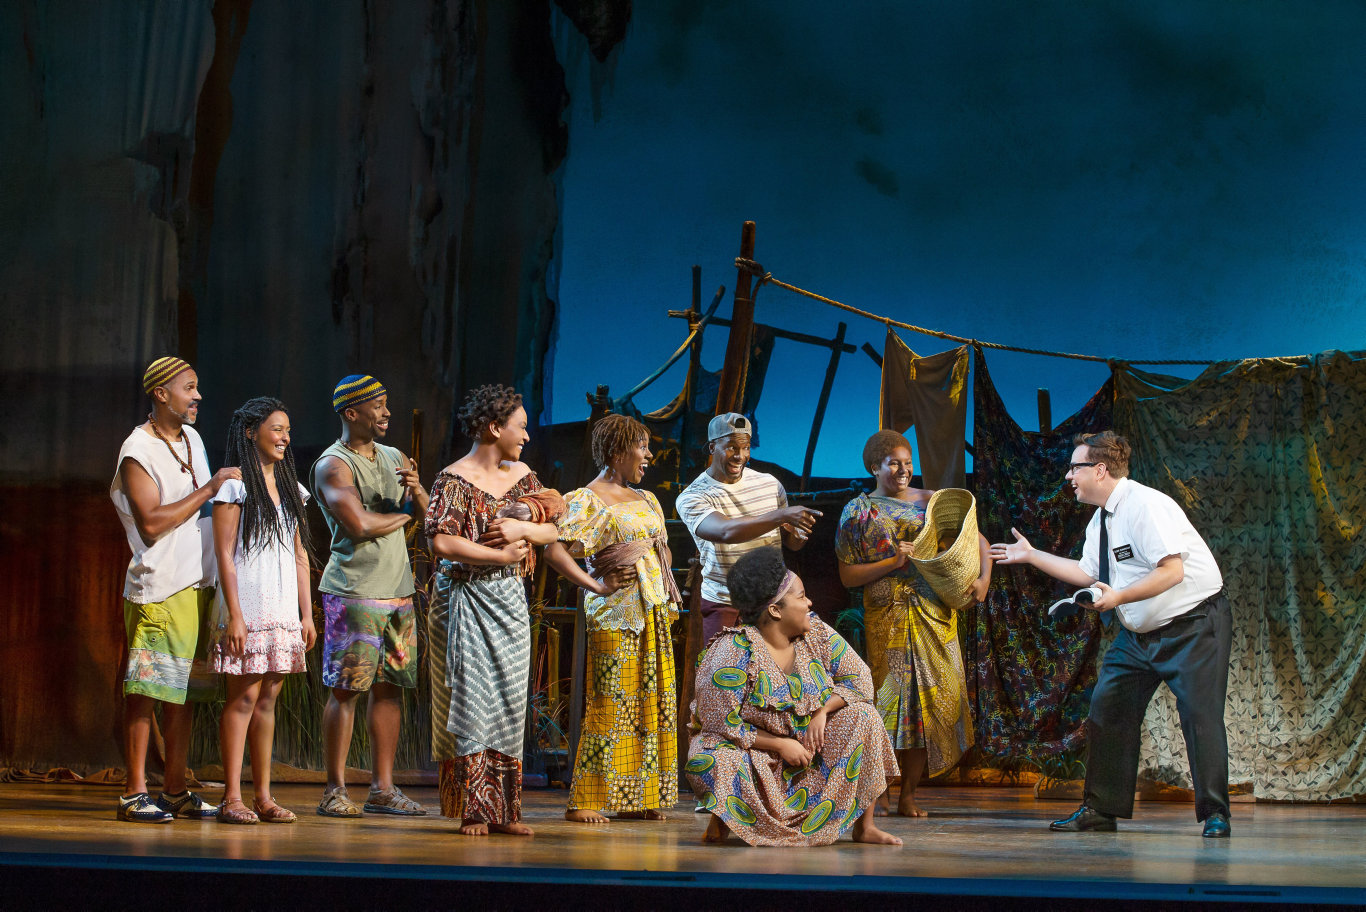 Nyk Bielak and company of the musical comedy The Book of Mormon.